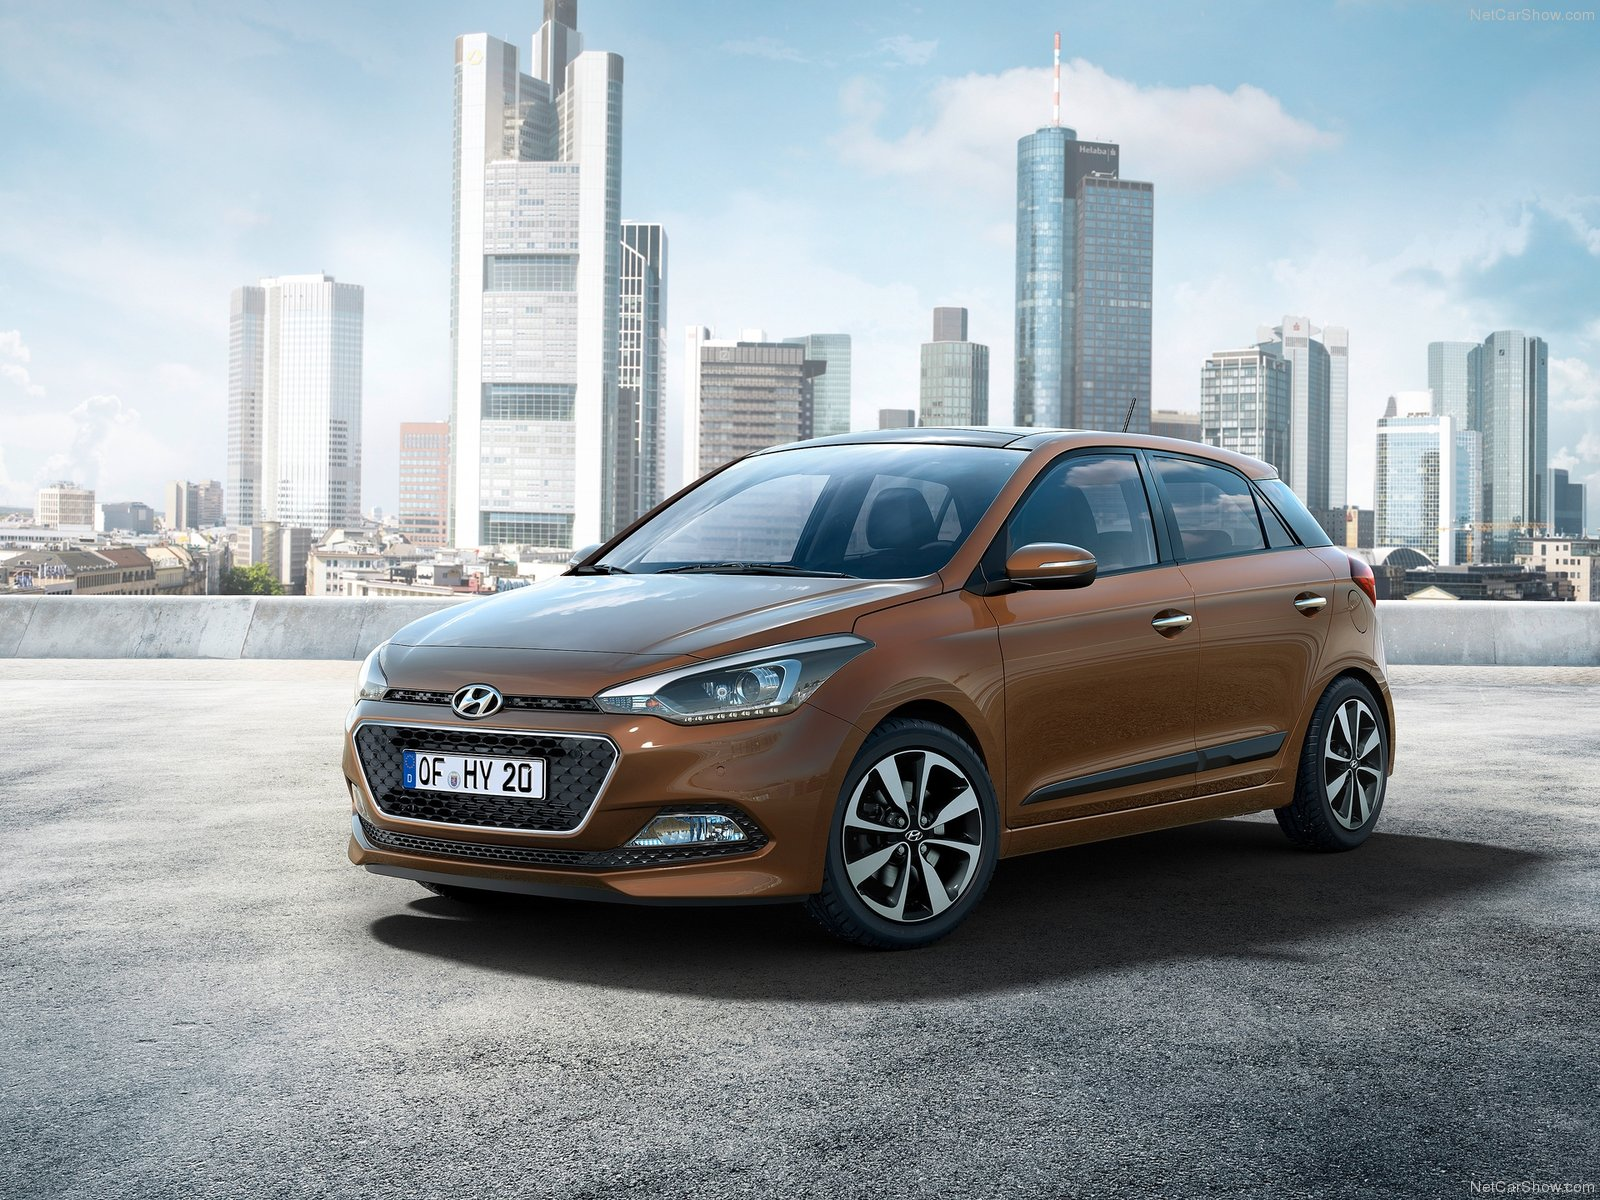 New hyundai i20 pictures